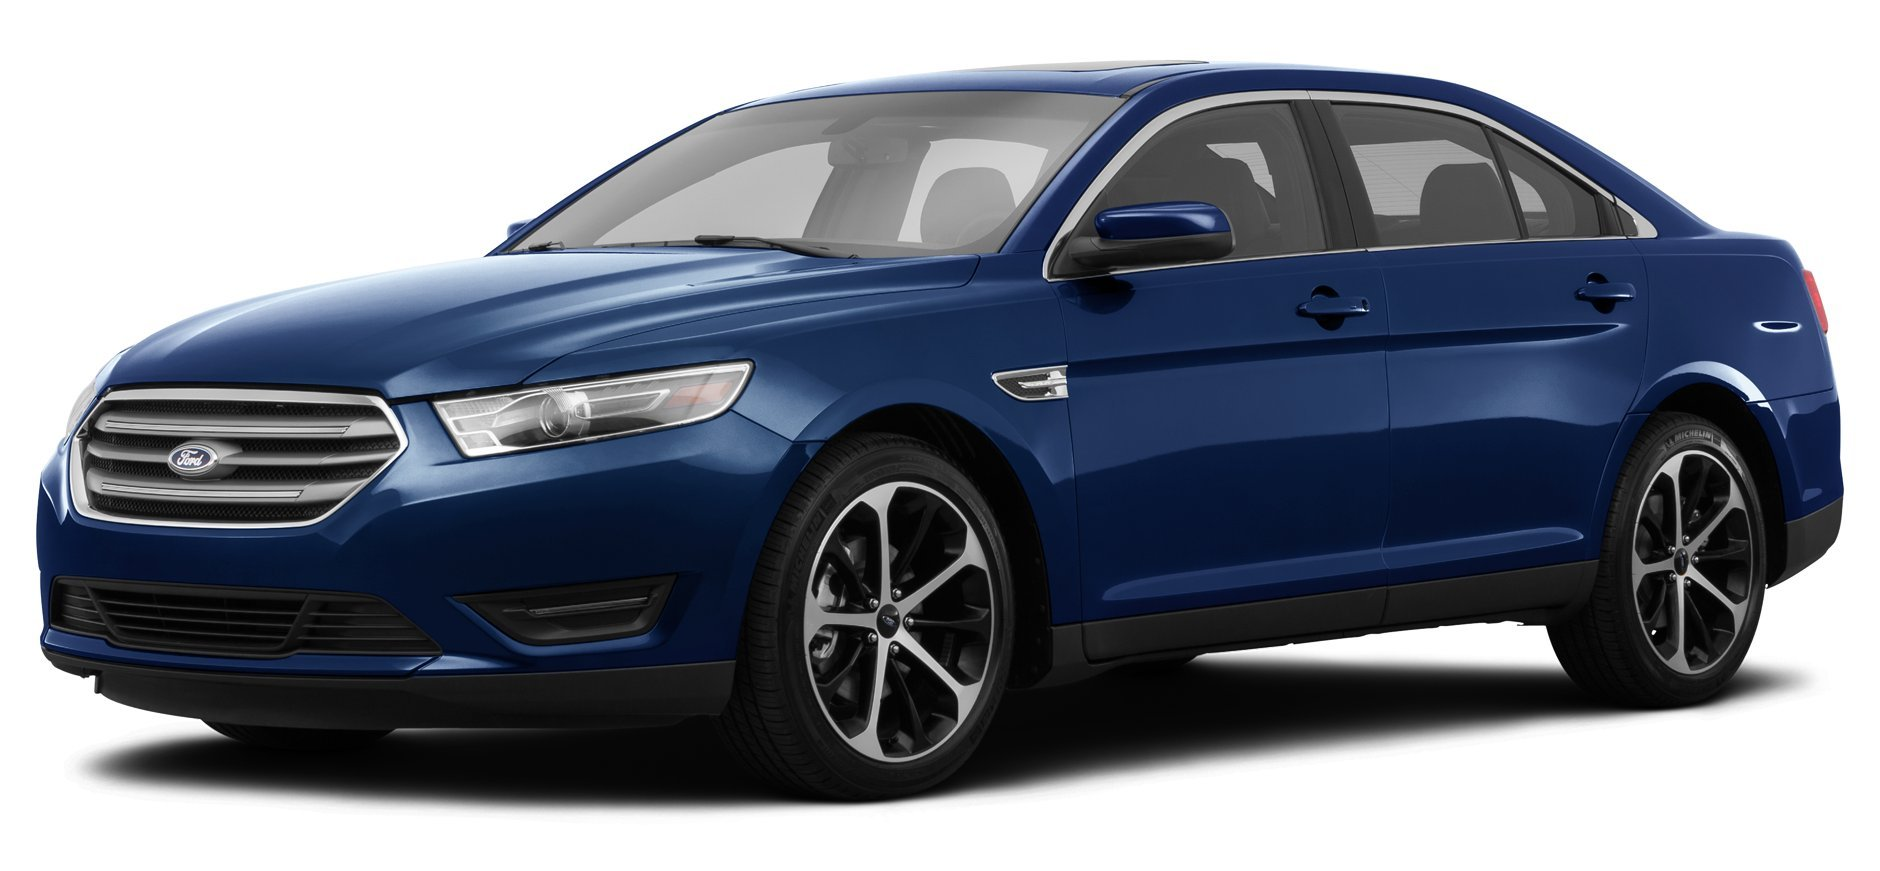 2016 ford taurus limited 4 door sedan all wheel drive